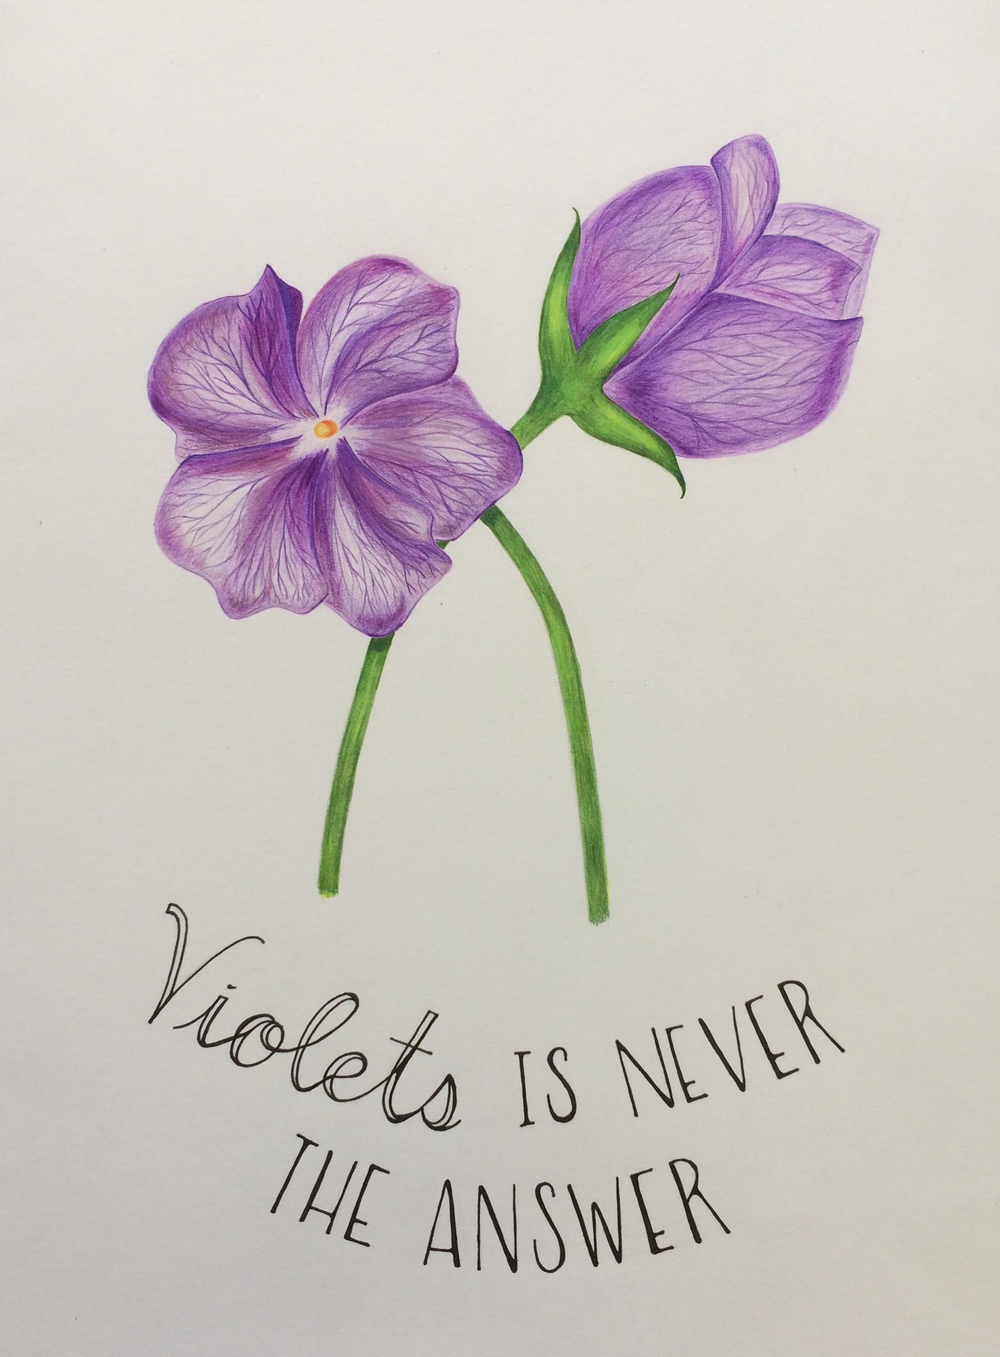 Violets Is Never The Answer